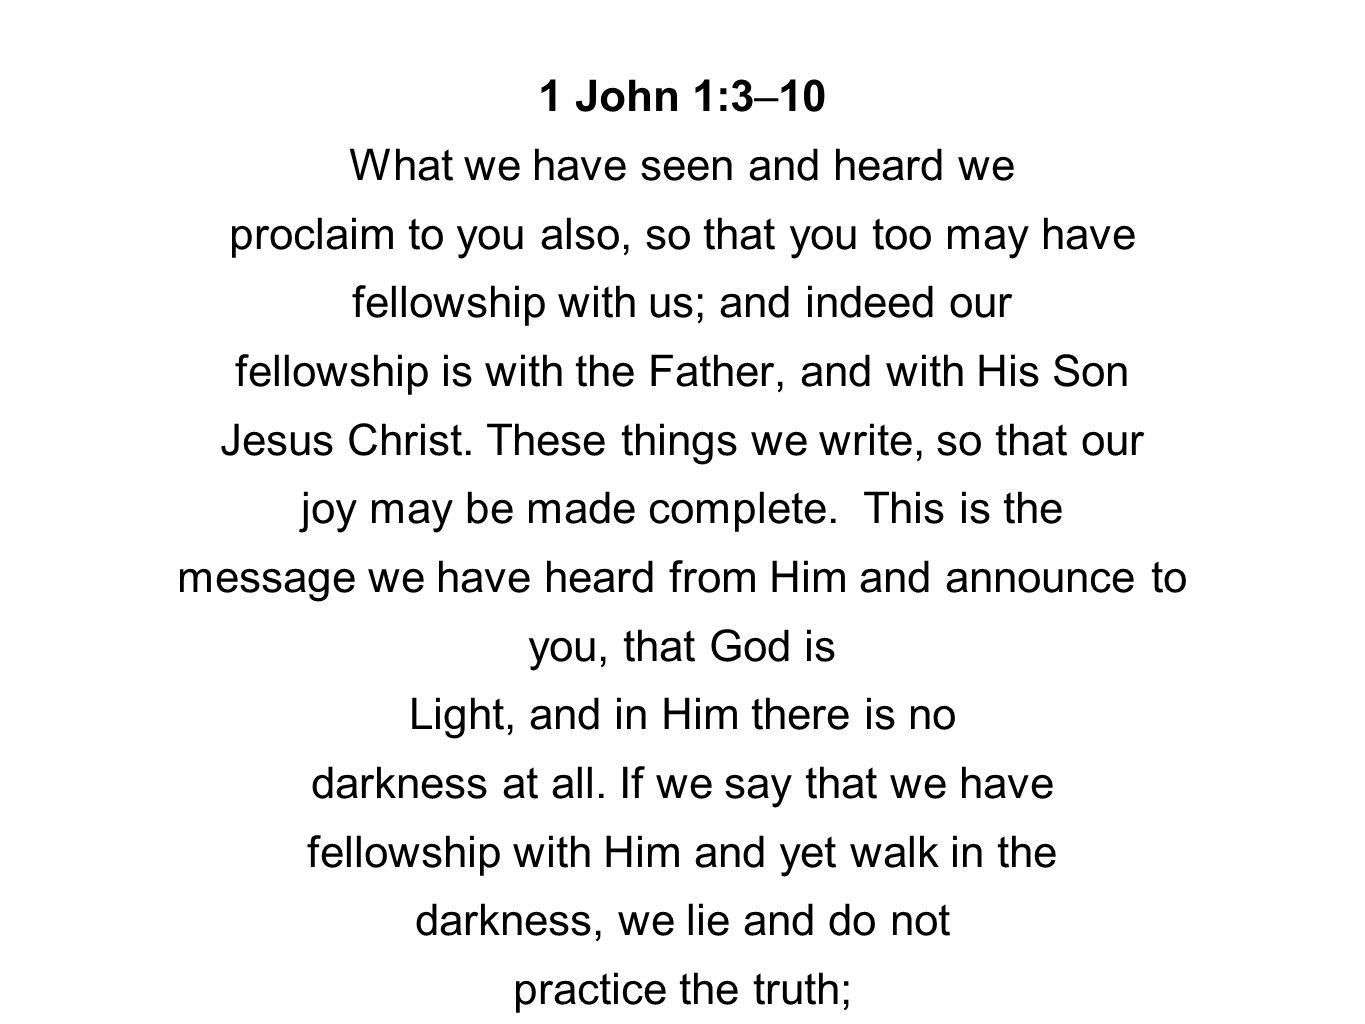 1 John 1:3–10 What we have seen and heard we proclaim to you also, so that you too may have fellowship with us; and indeed our fellowship is with the Father, and with His Son Jesus Christ.